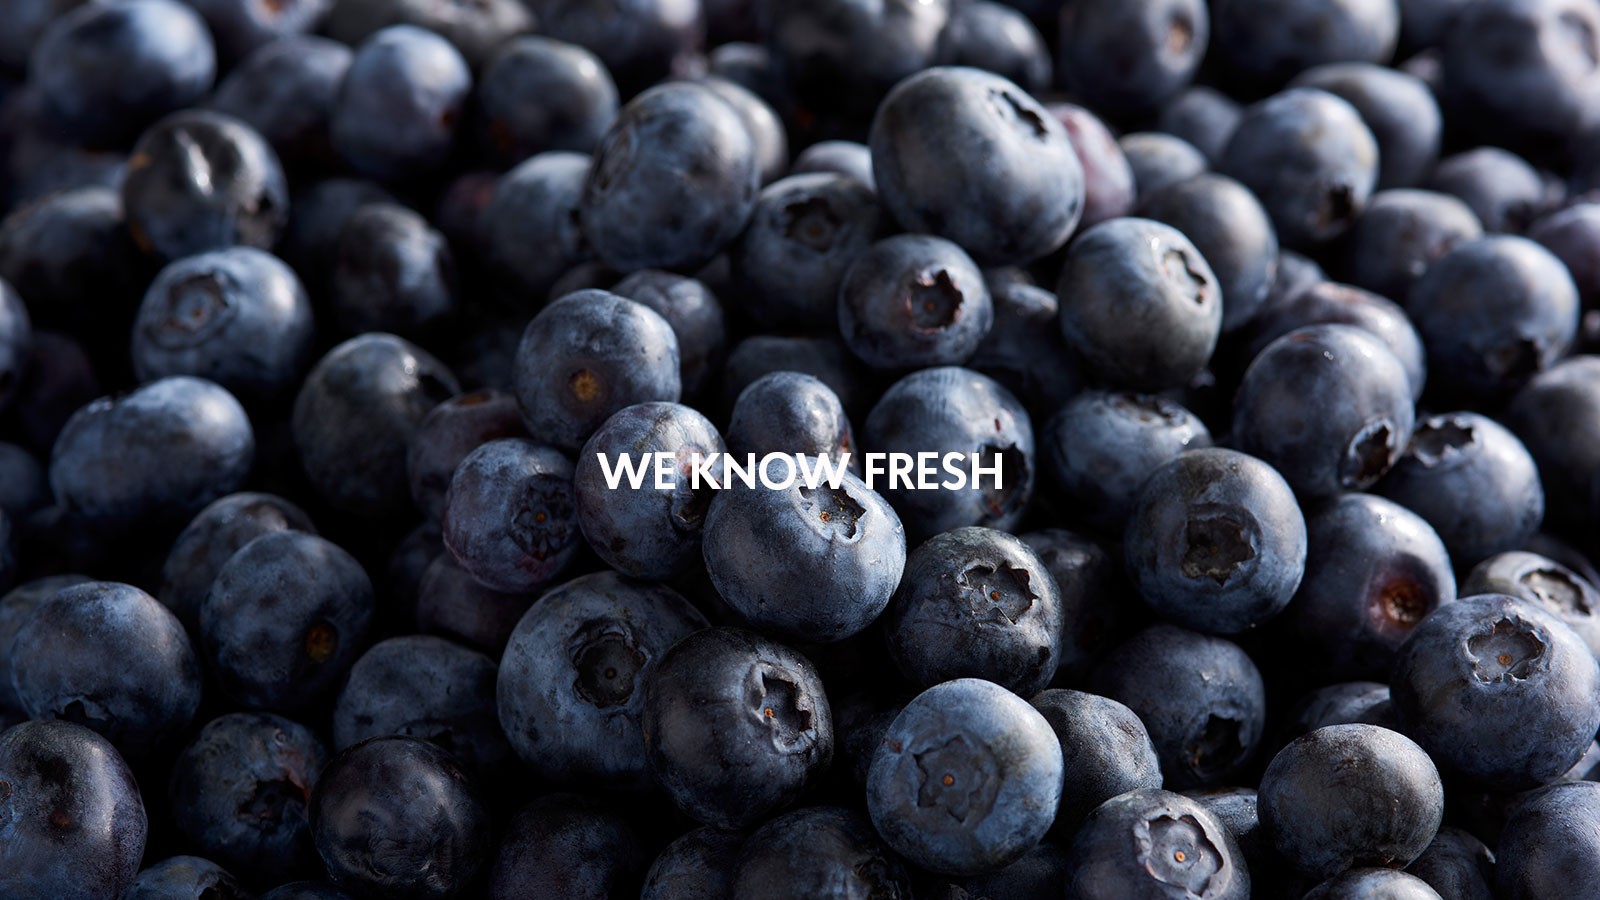 blueberries - we know fresh